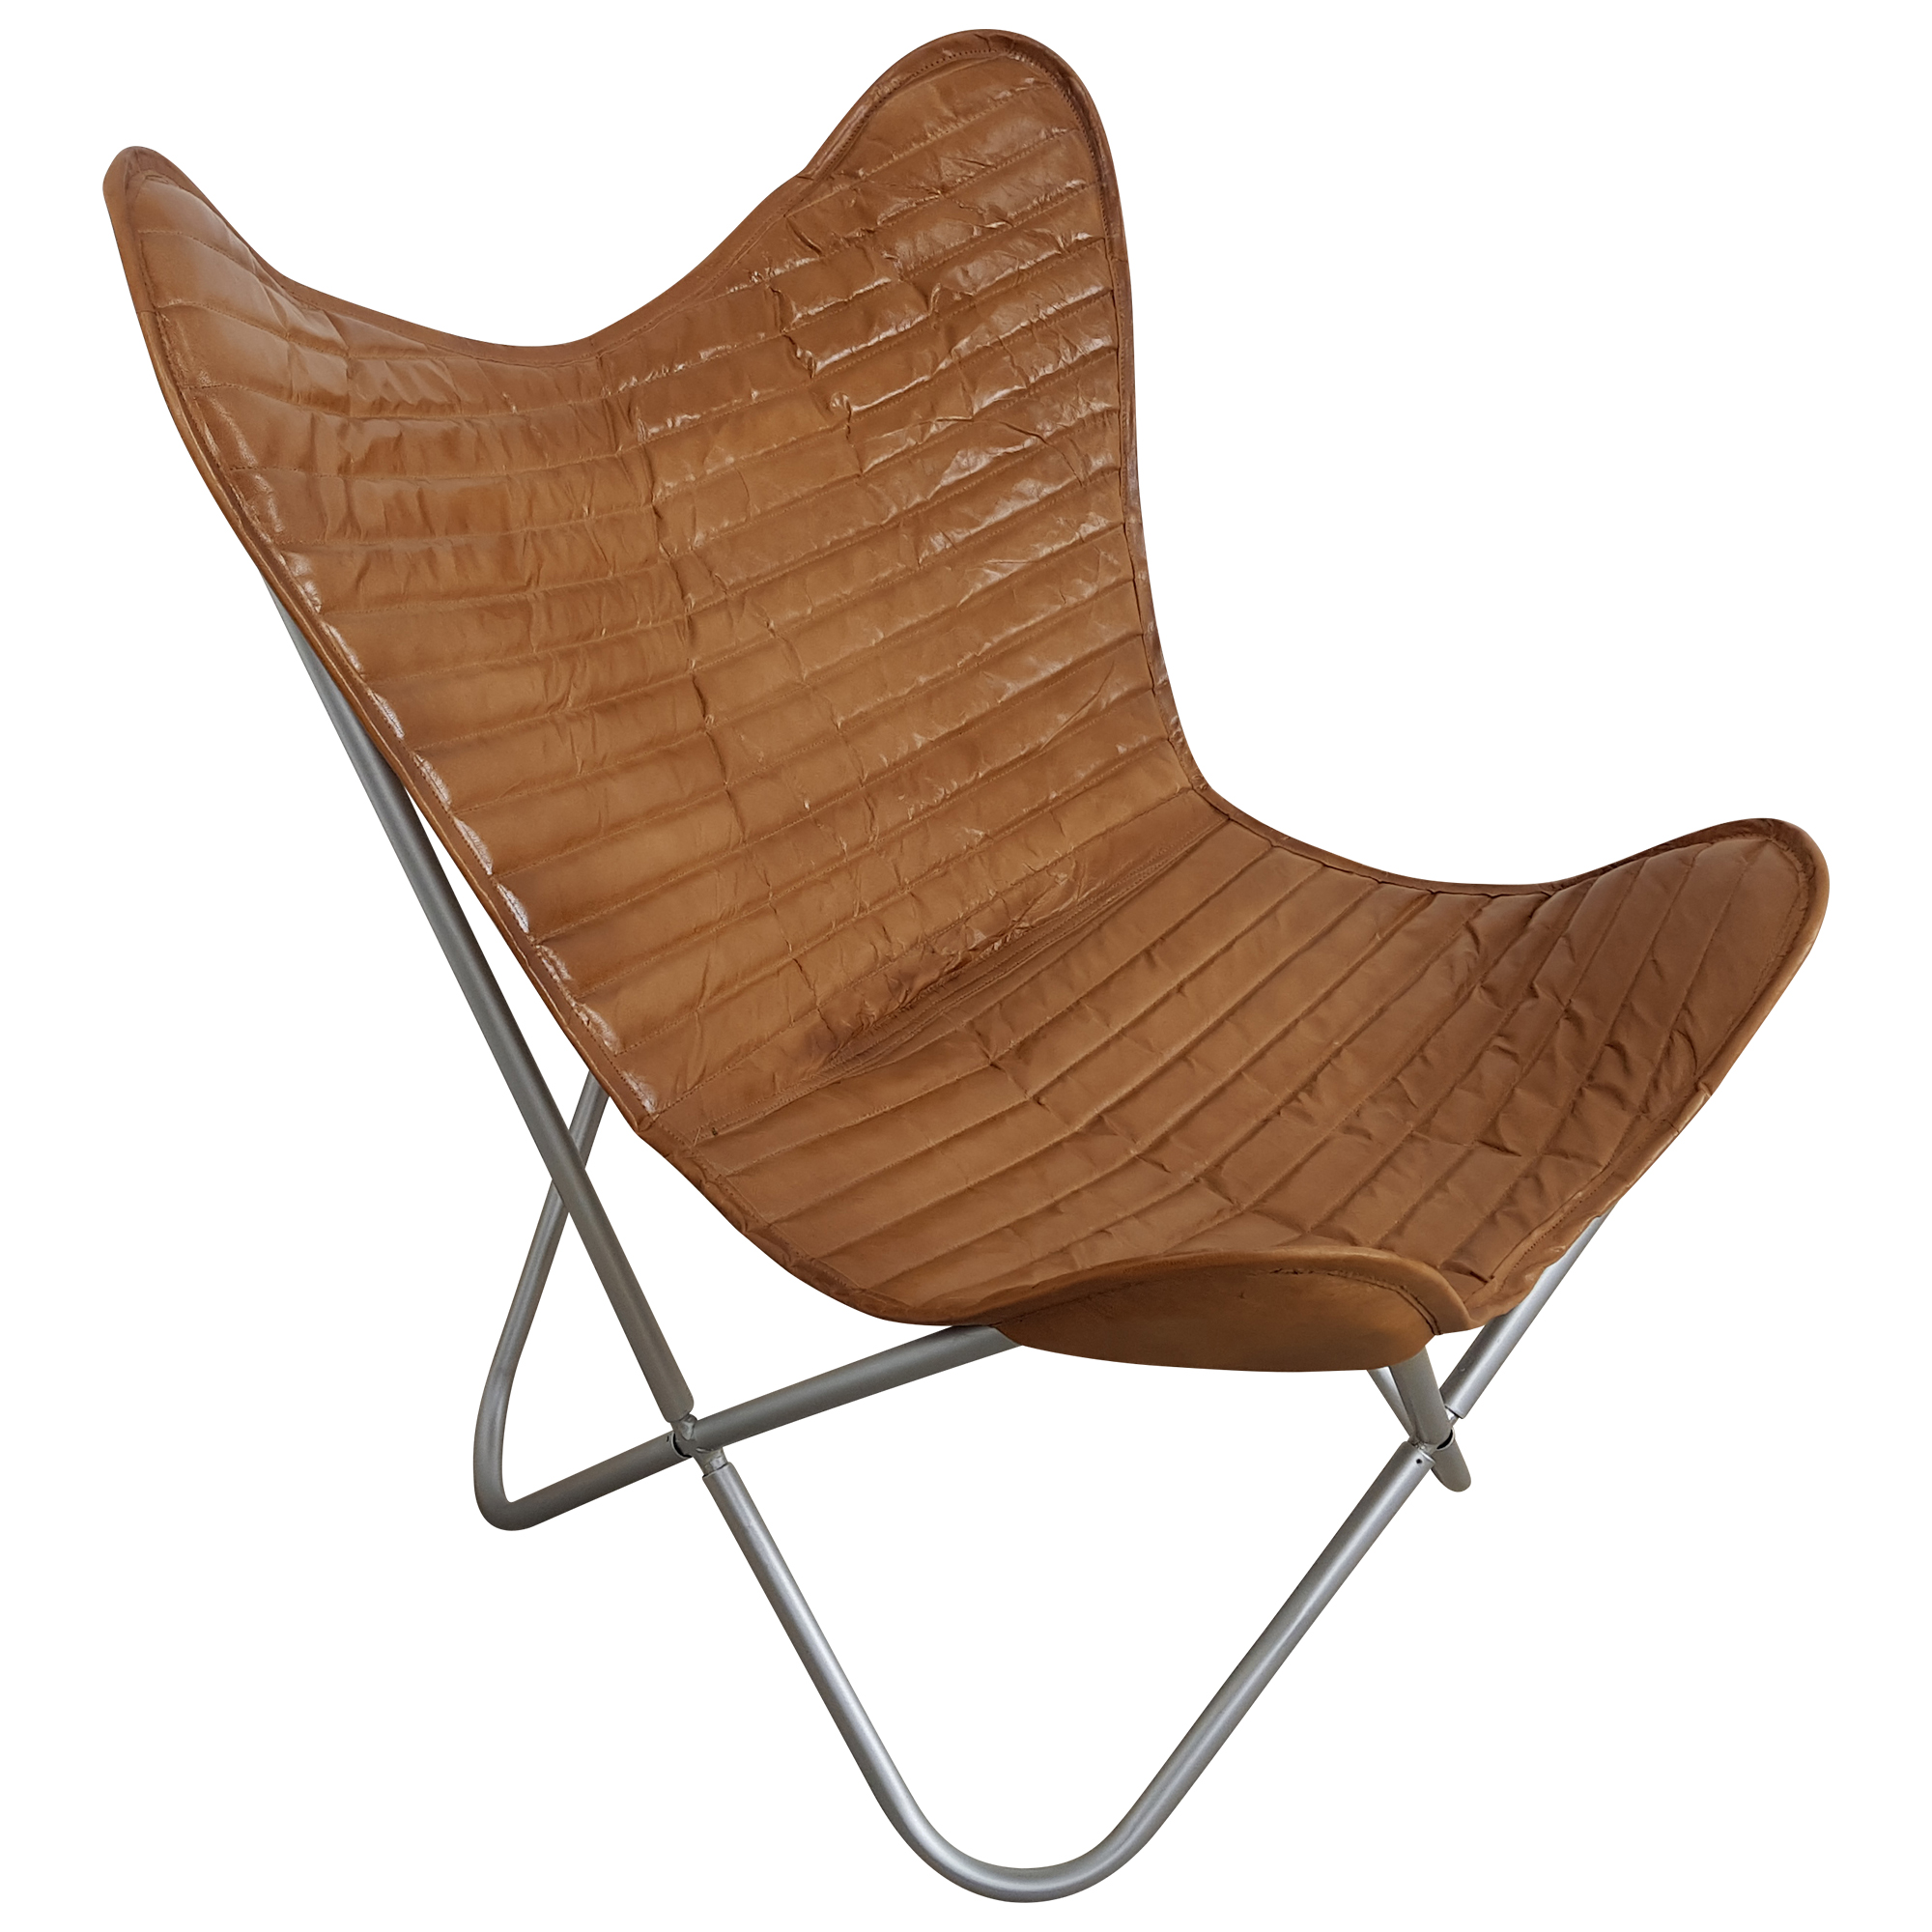 Butterfly Sessel Butterfly Chair Sessel Design Lounge Stuhl Echt Leder